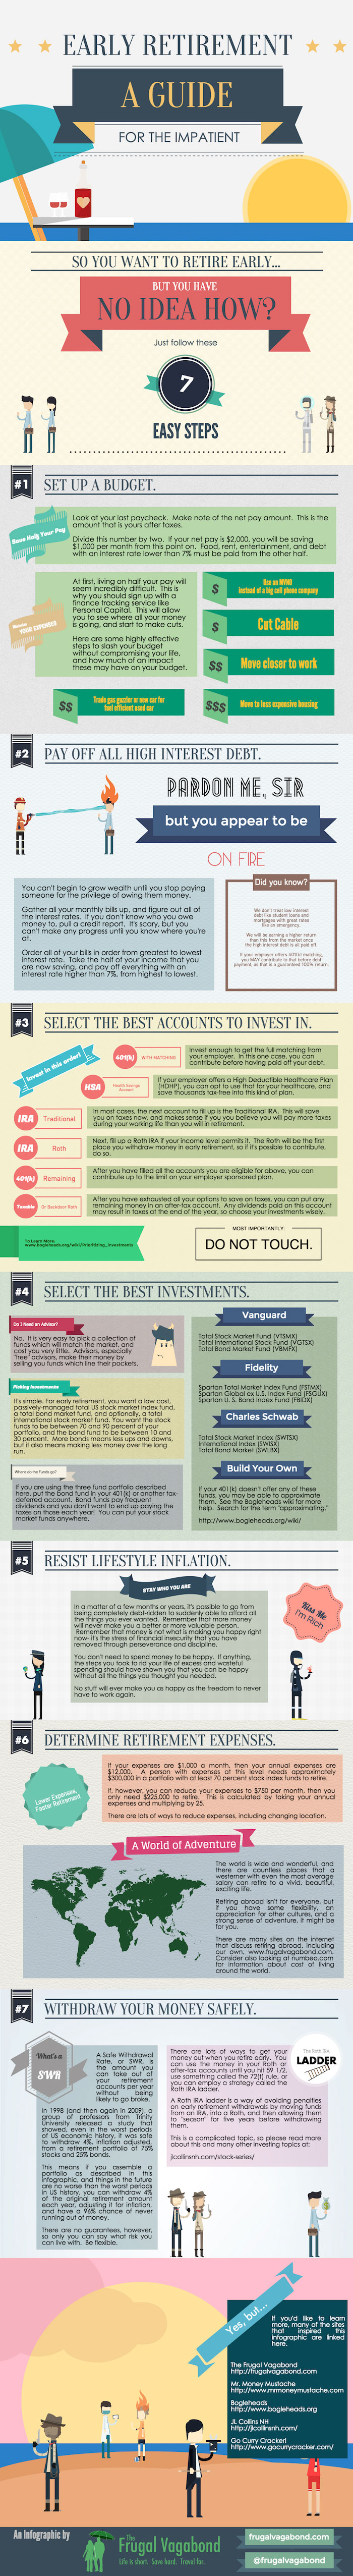 An infographic by: FrugalVagabond.com